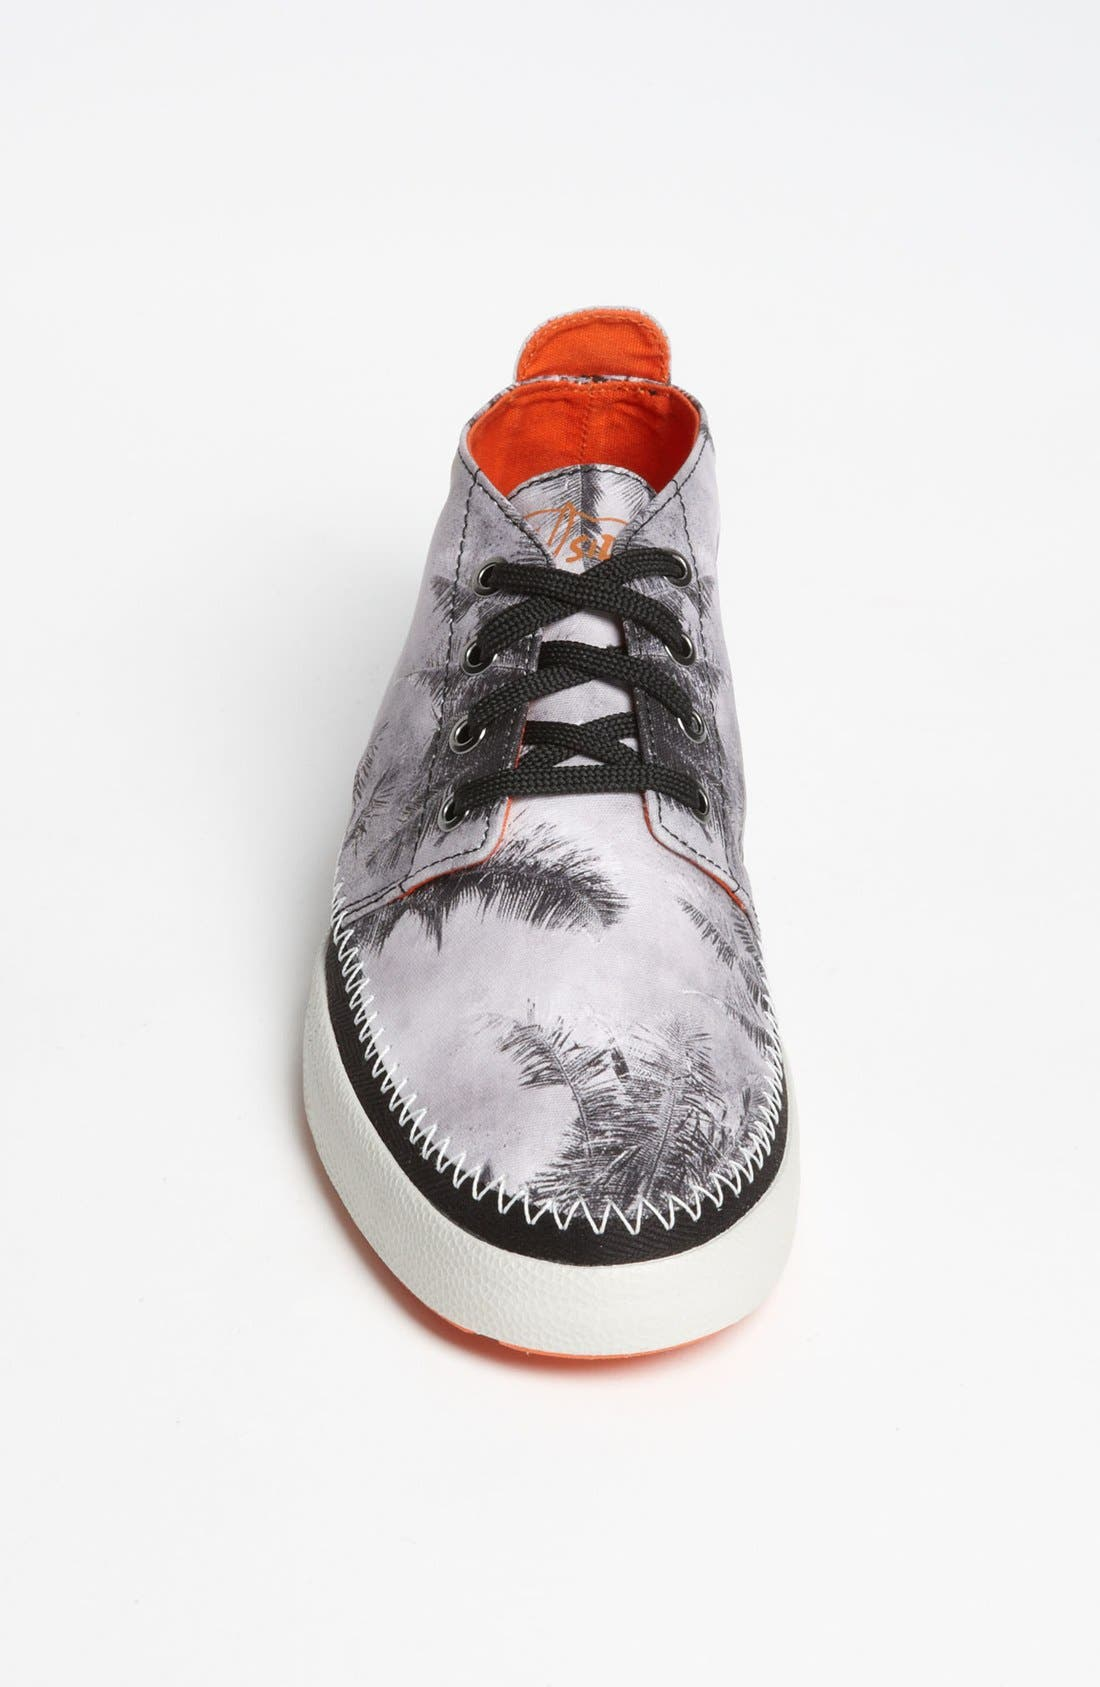 Top-Sider<sup>®</sup> 'Drifter' Chukka Boot,                             Alternate thumbnail 3, color,                             Black/ White Print